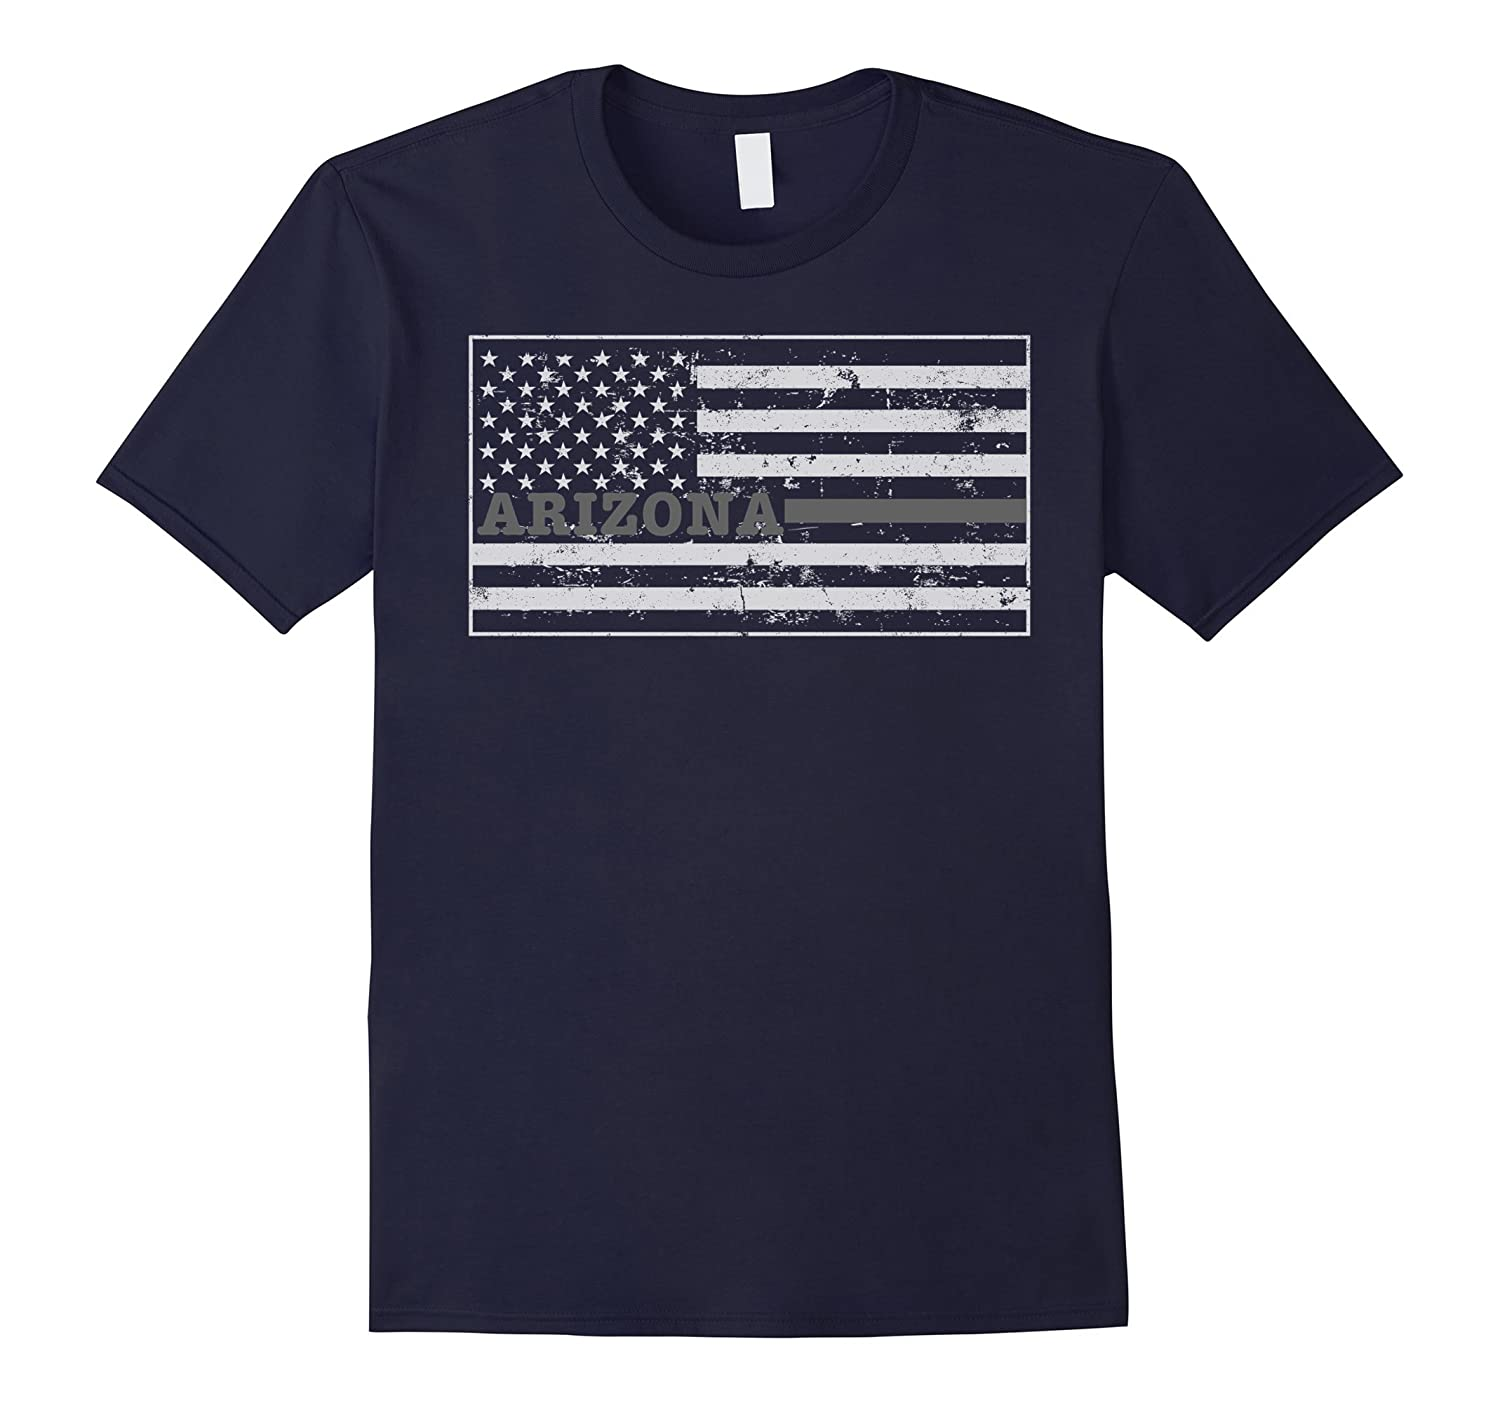 Arizona Shirt Correction Officer Shirt Prison Guard Shirt-TH